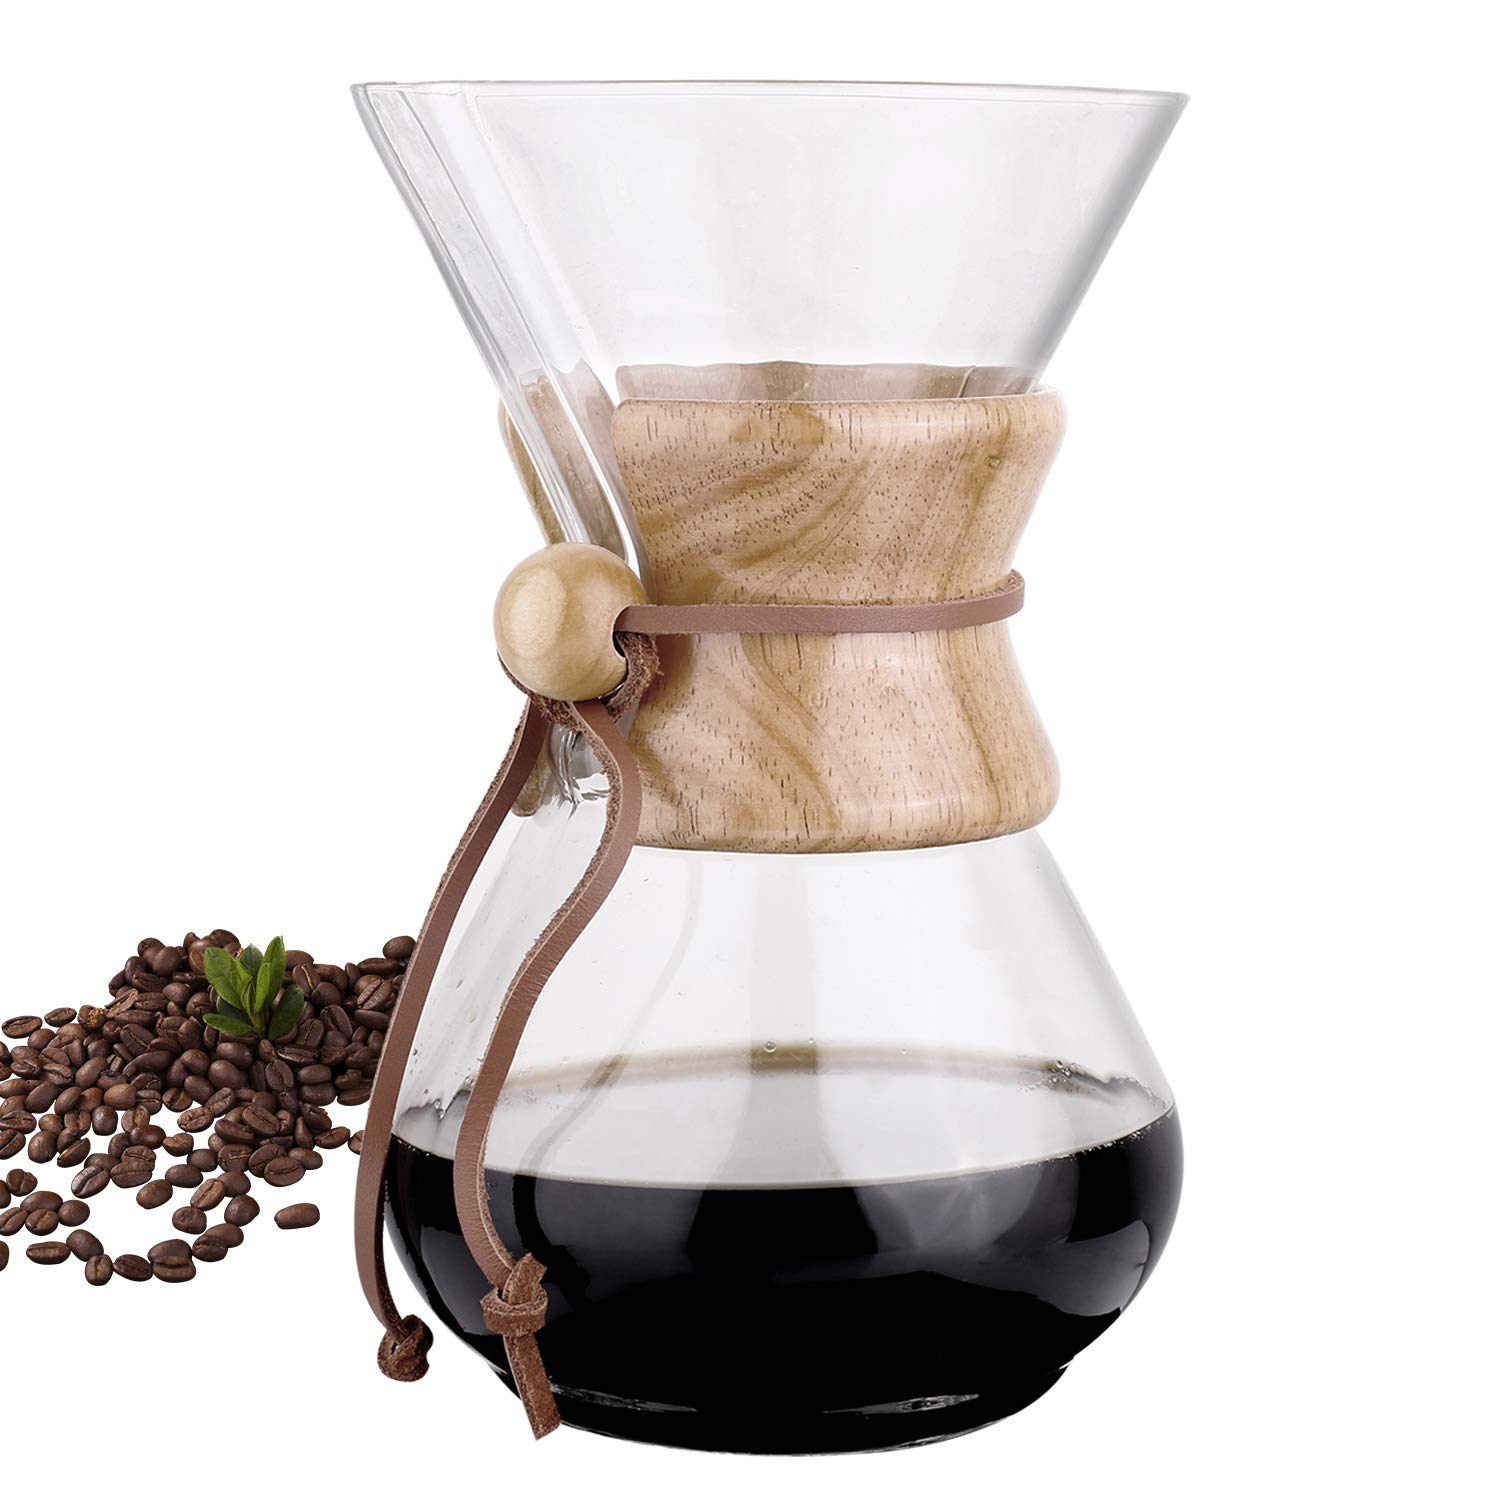 Phyismor Classic Pour Over Coffee Maker Carafe - 1100ml/37oz, Coffee Dripper Brewer Pot, with Borosilicate Glass, for Manual Home Made Drip Coffee by Phyismor